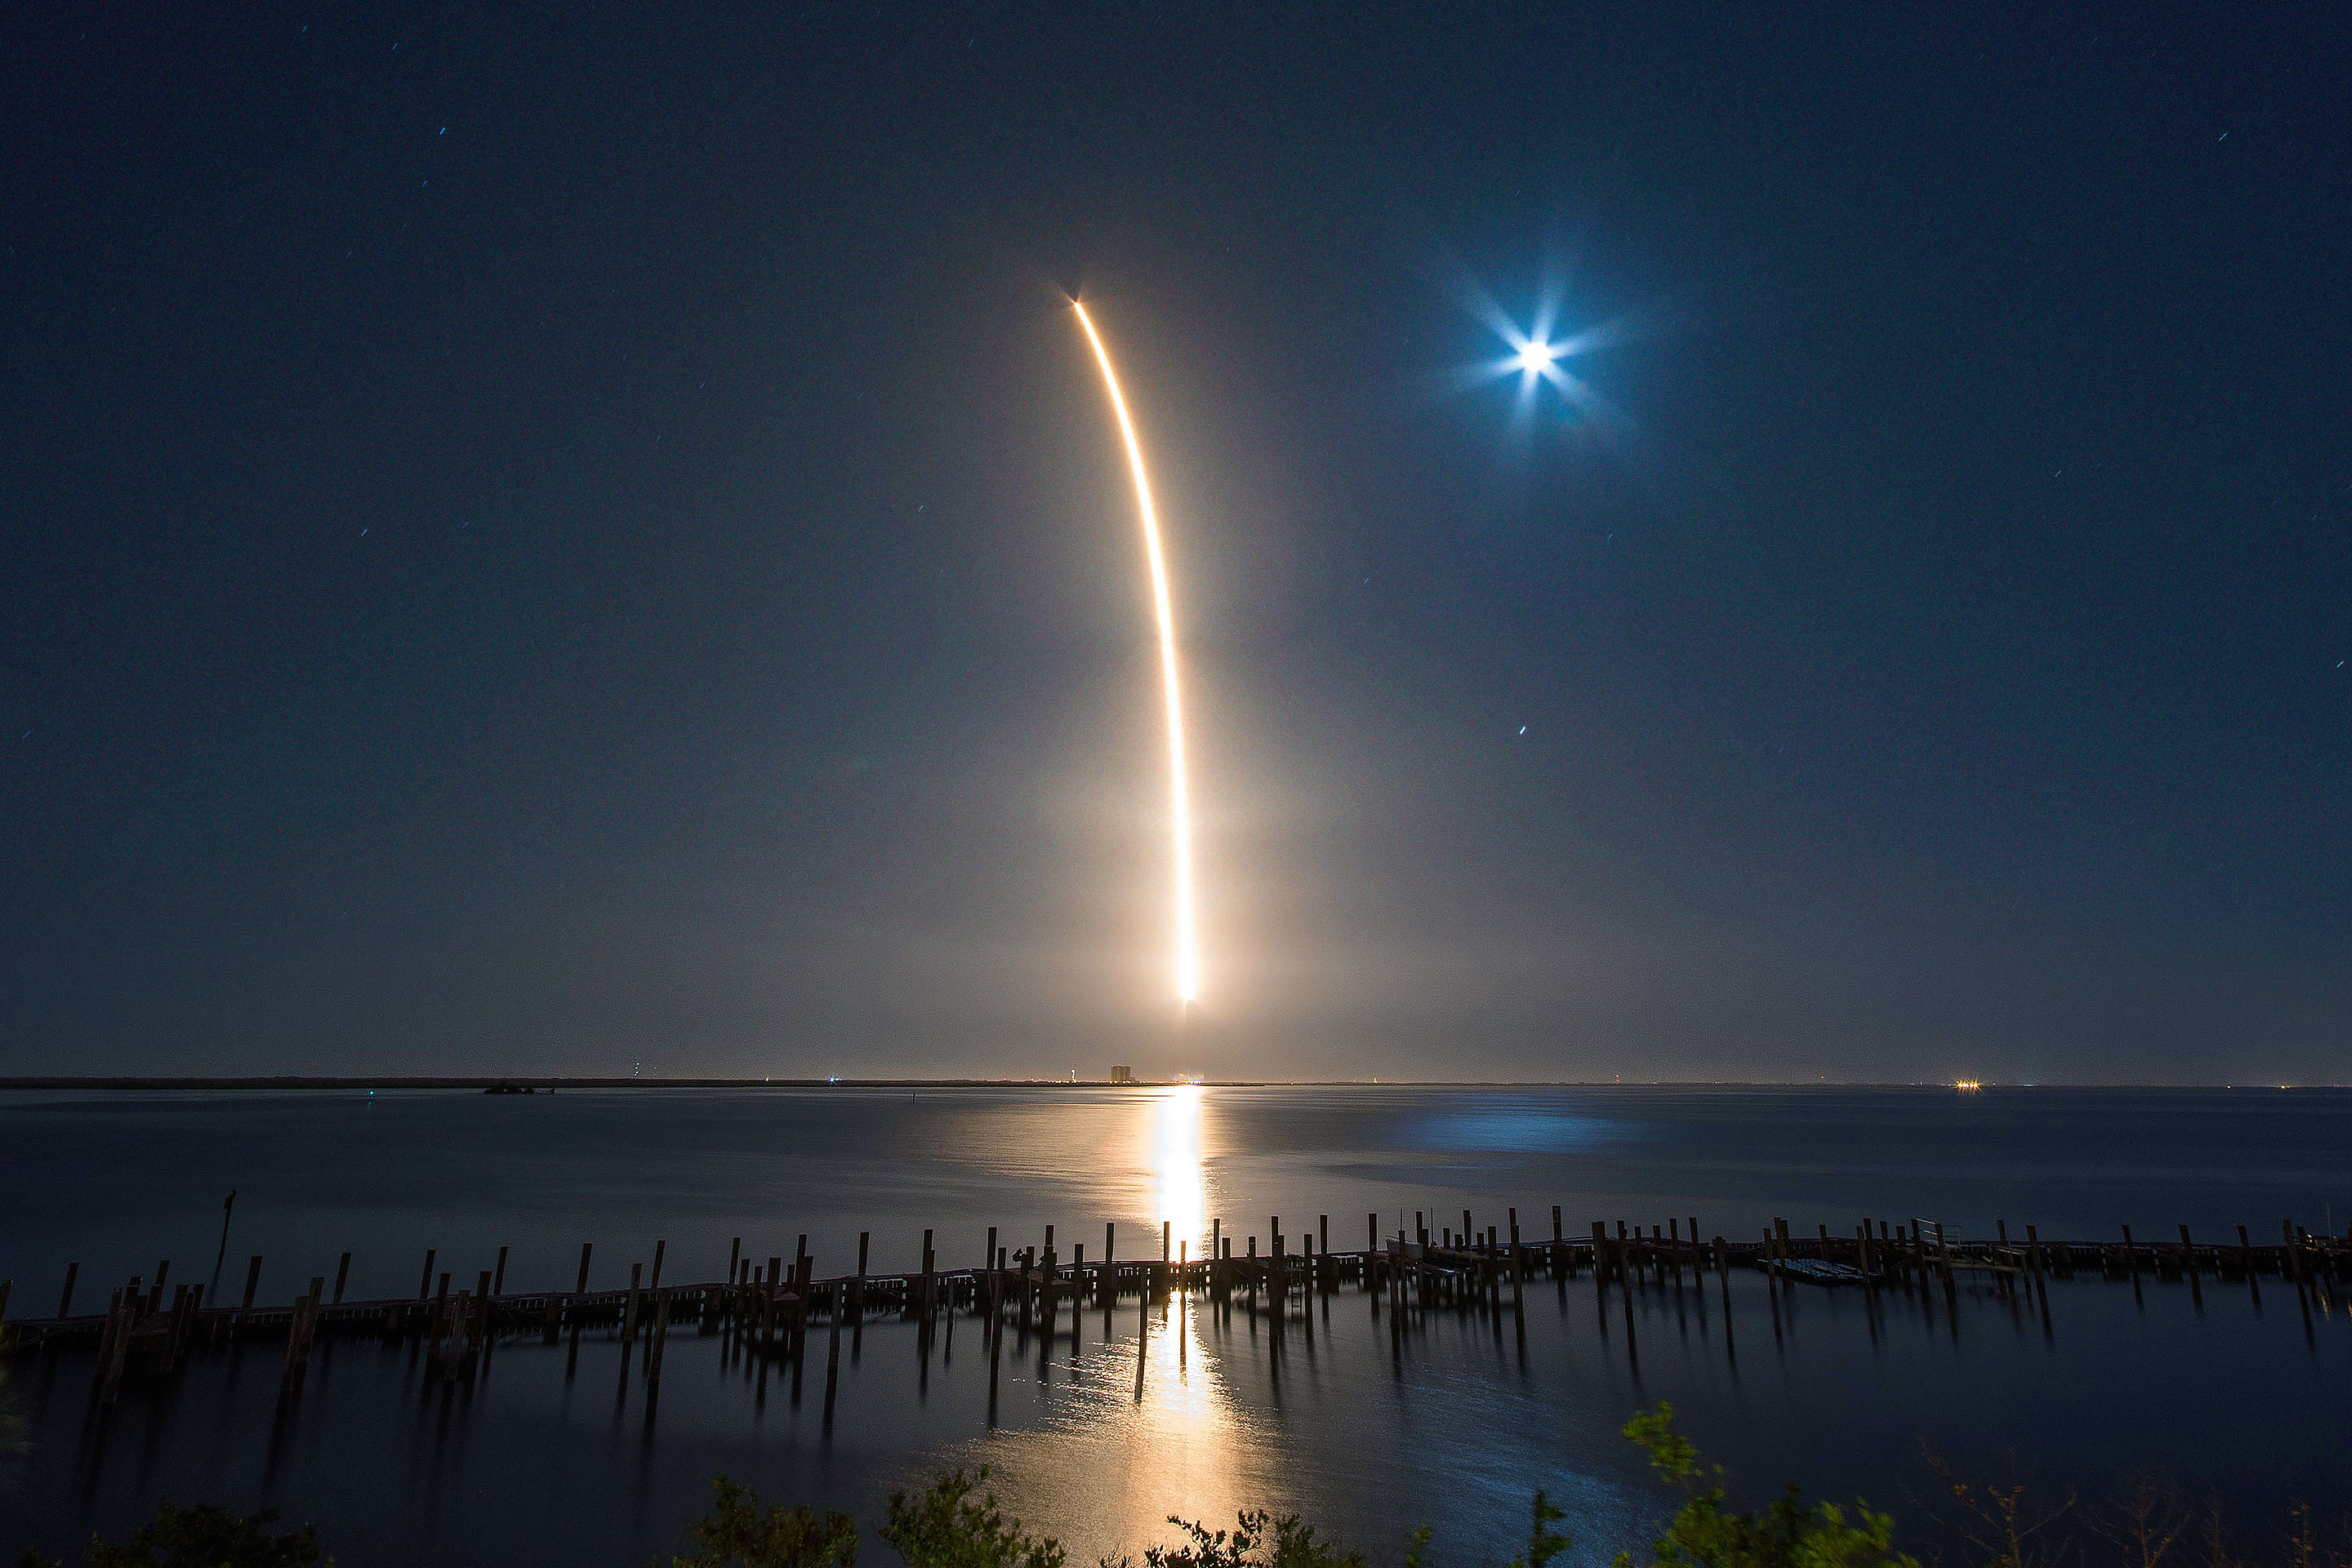 A SpaceX Falcon 9 rocket races skyward in March after its launch from Cape Canaveral, Fla.